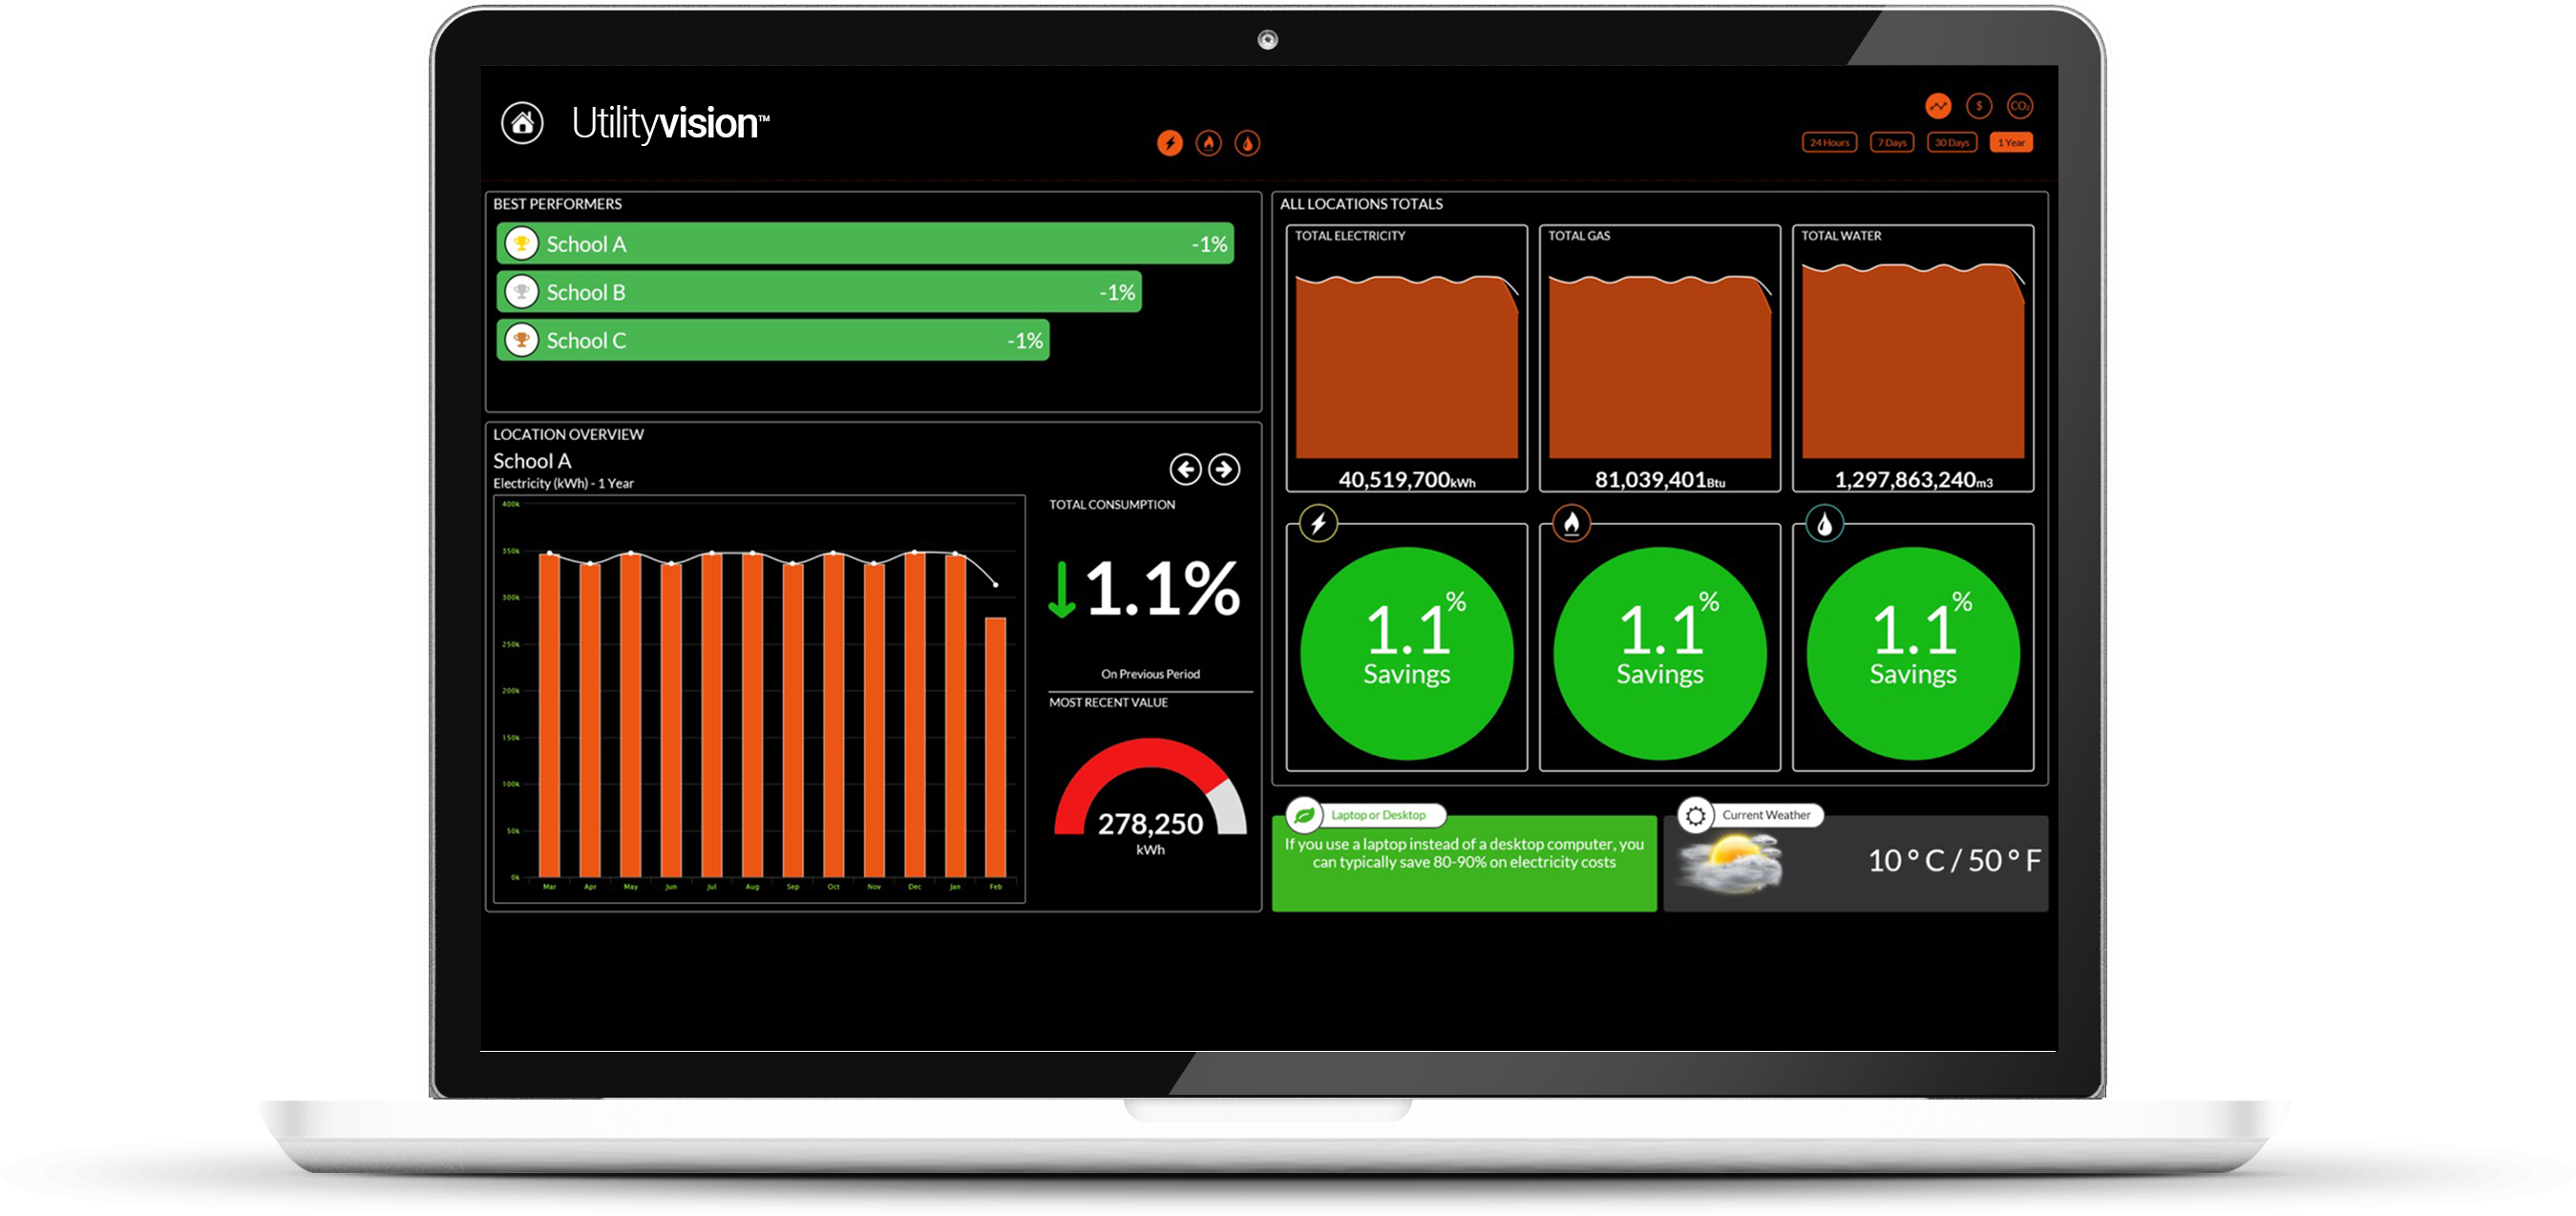 Utilityvision dashboard sample image